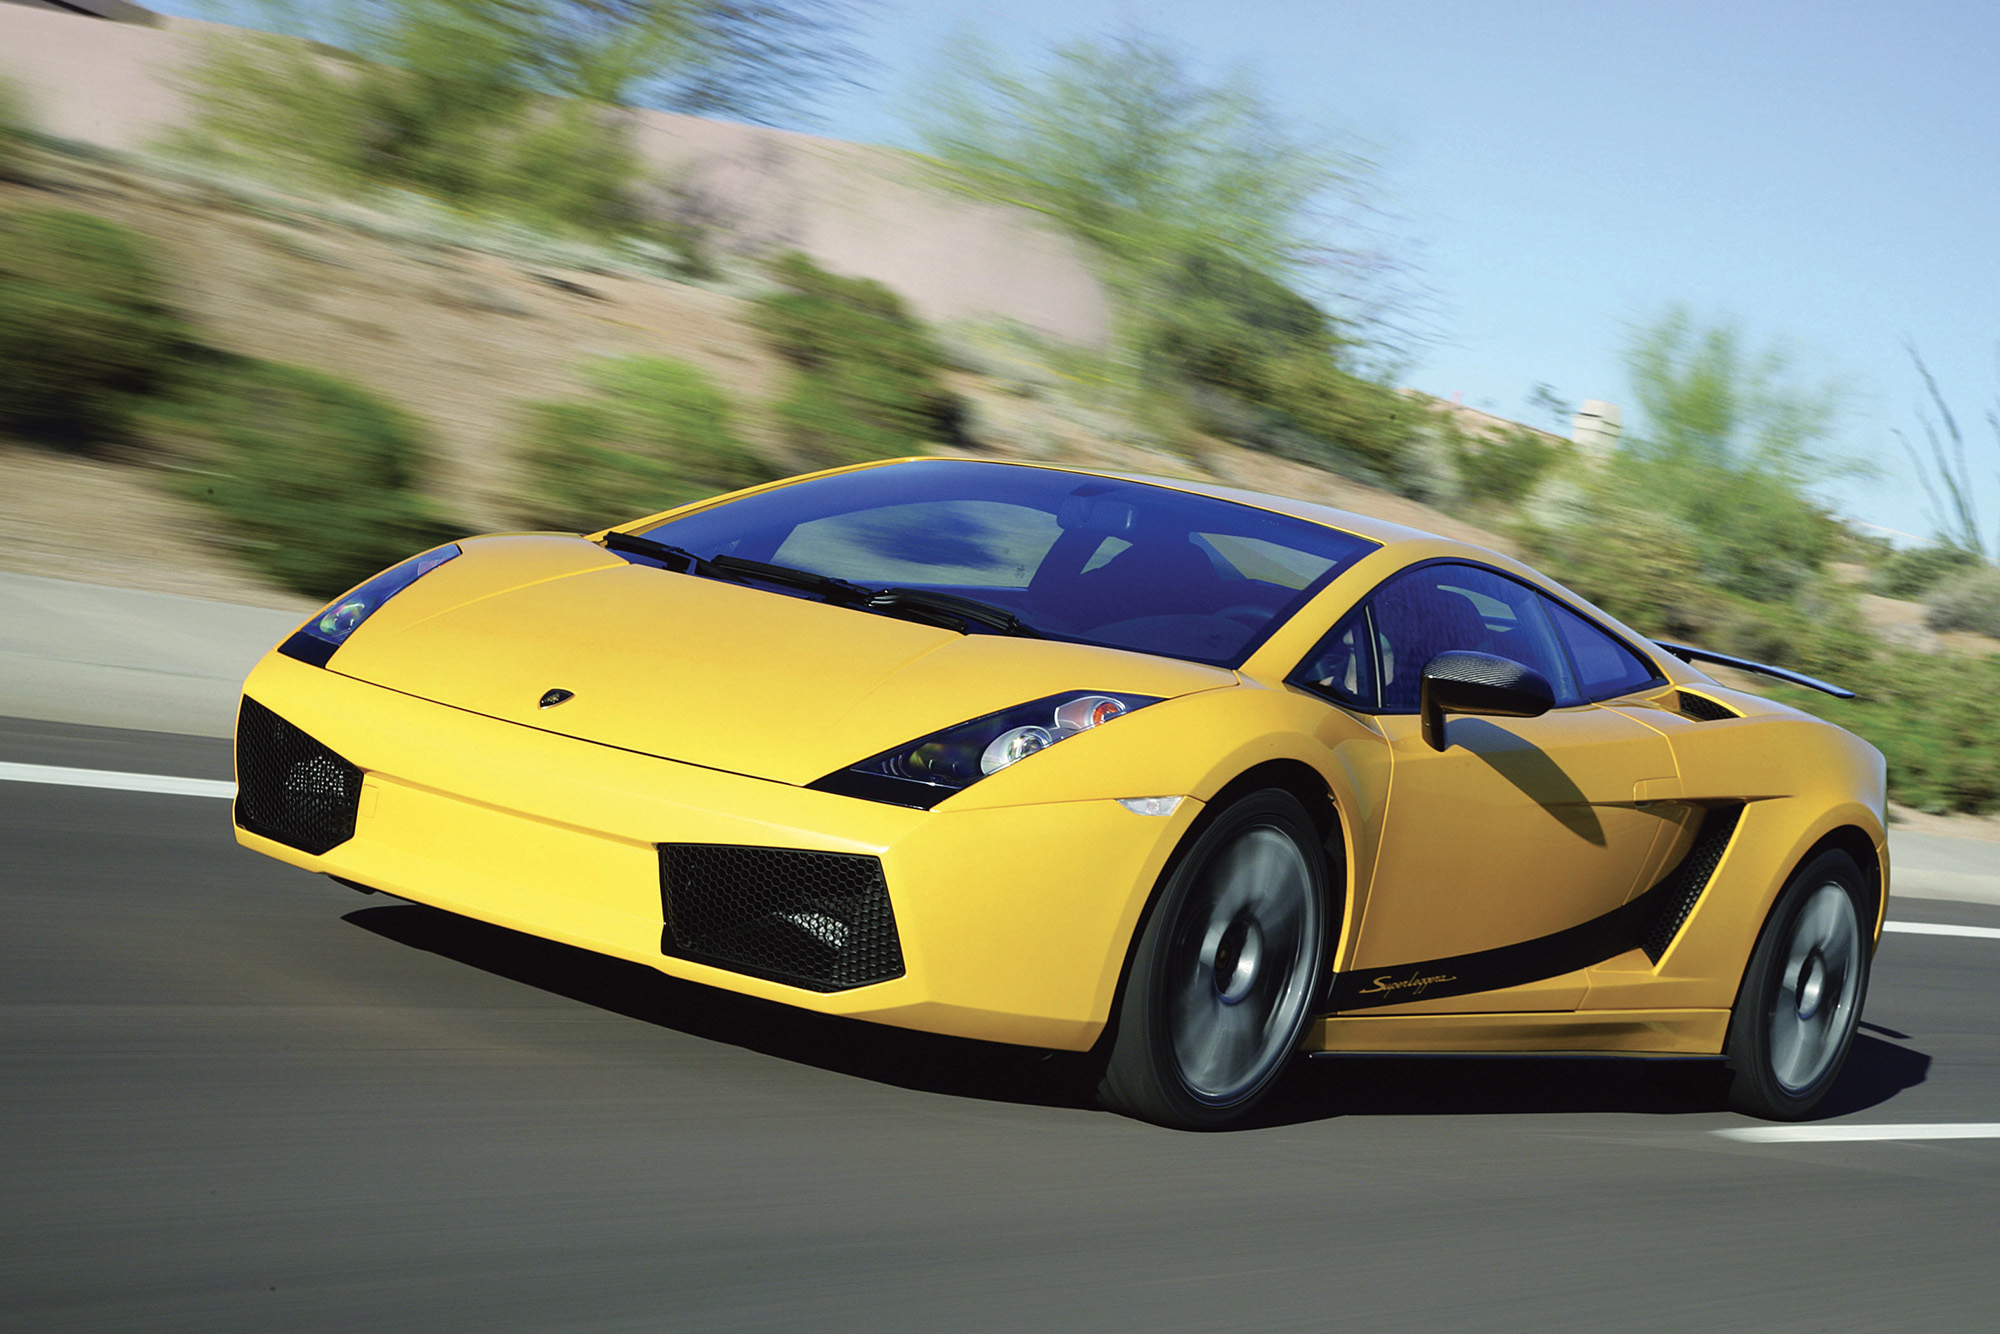 Yellow Lamborghini Gallardo on the road